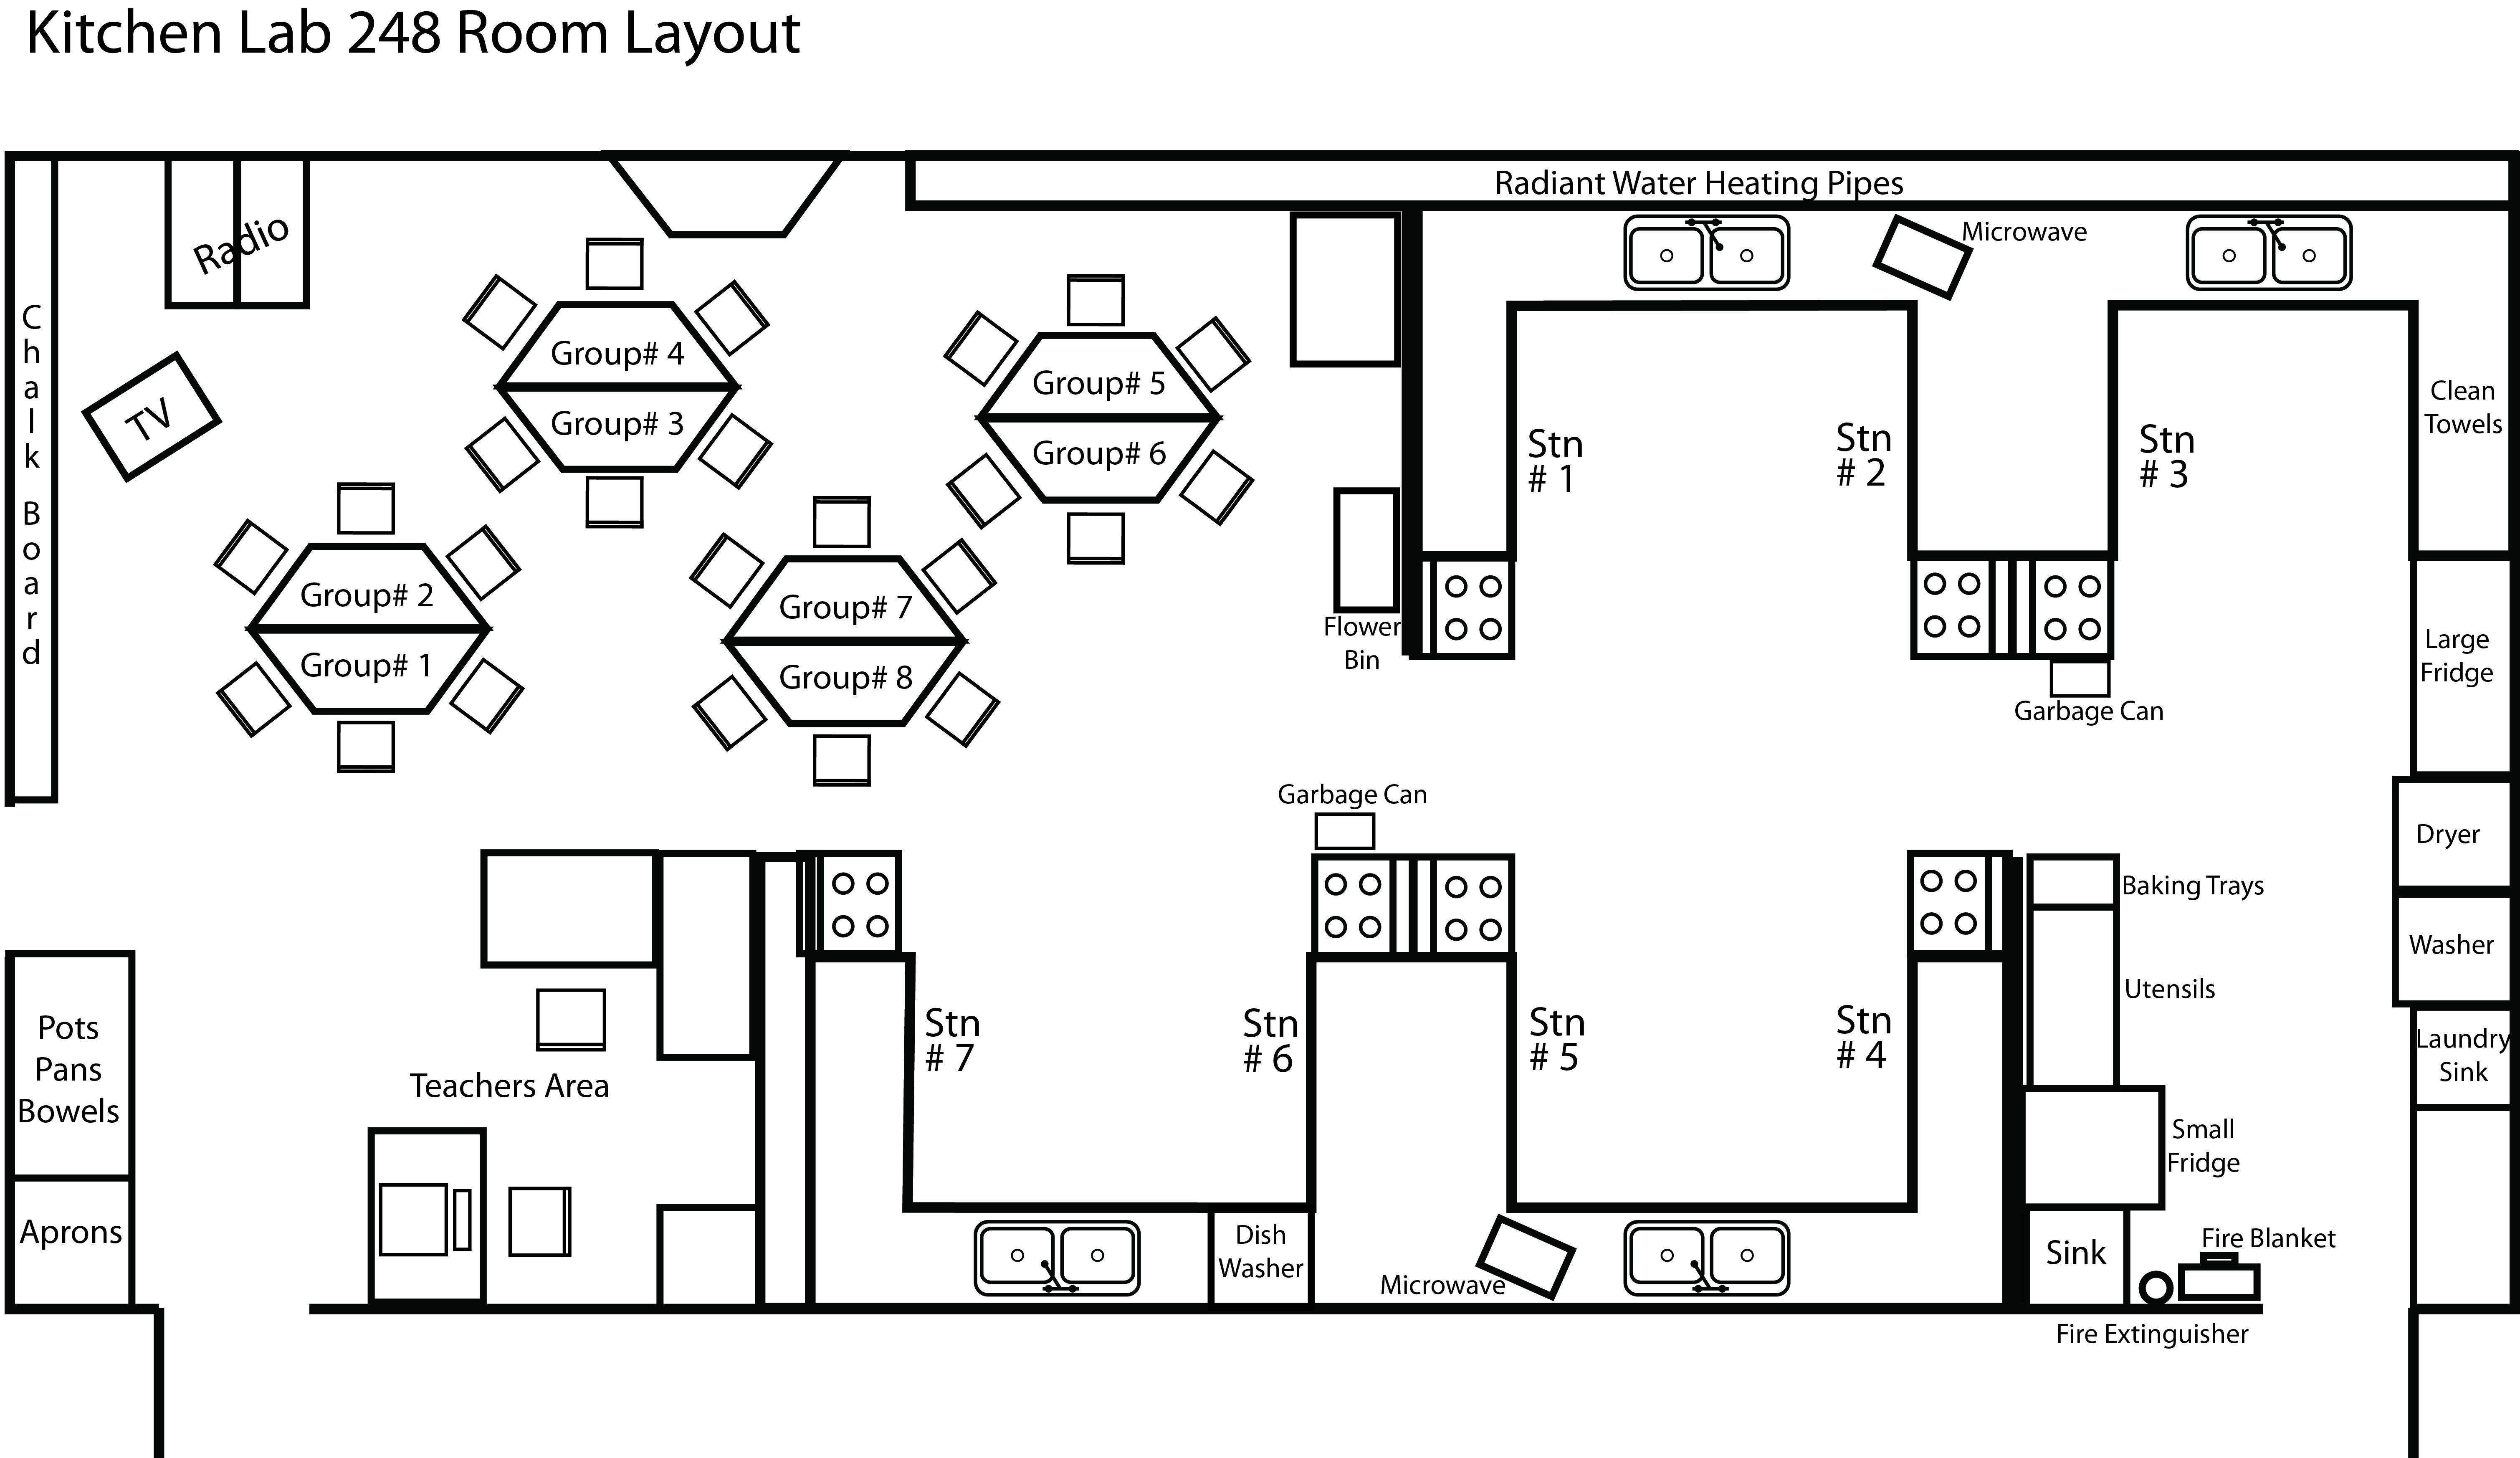 Kitchen Room Map Labs Plan How To Plan Food Lab